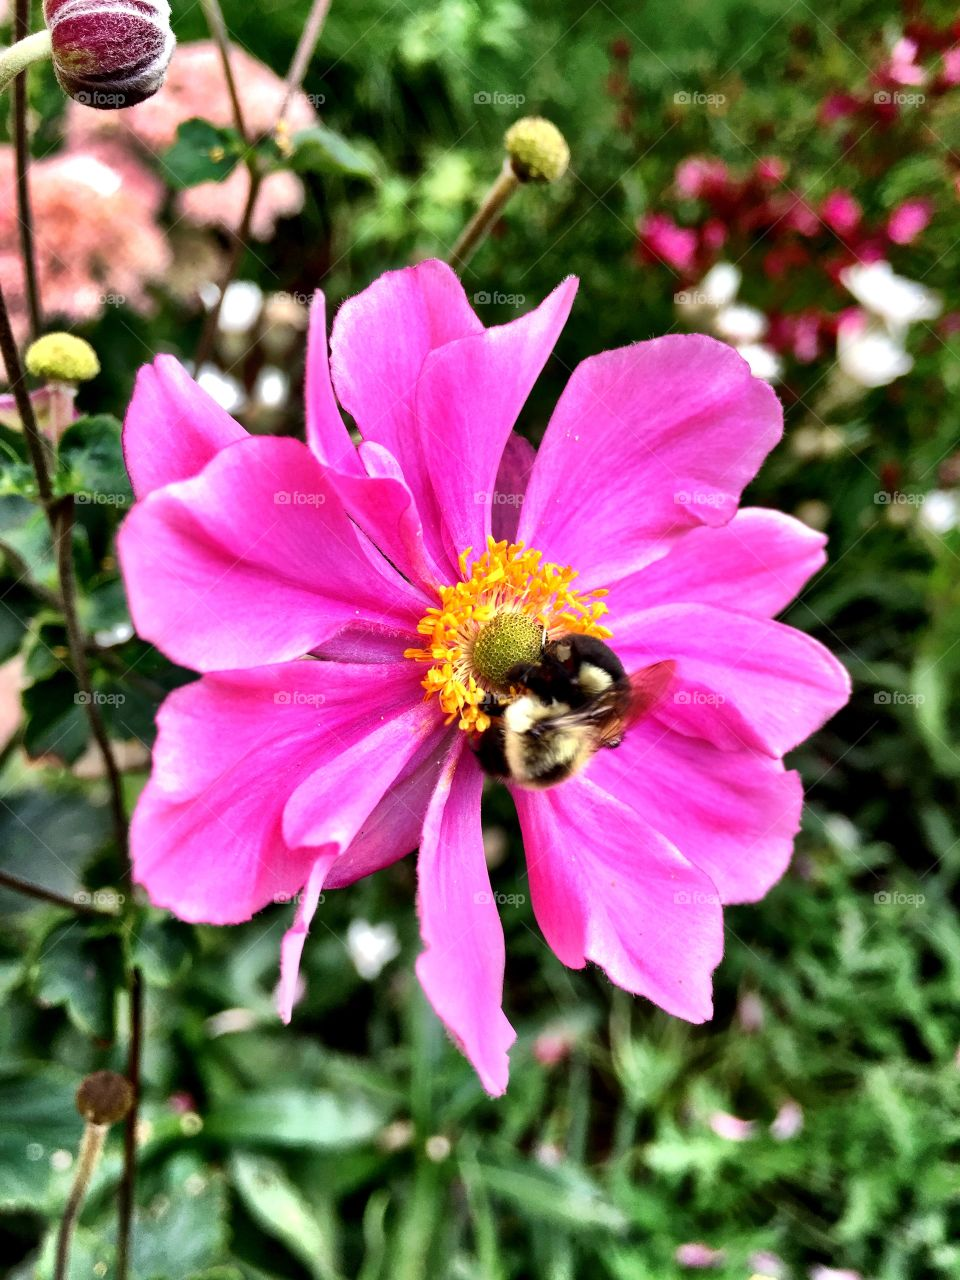 Bee pollinating on pink flower